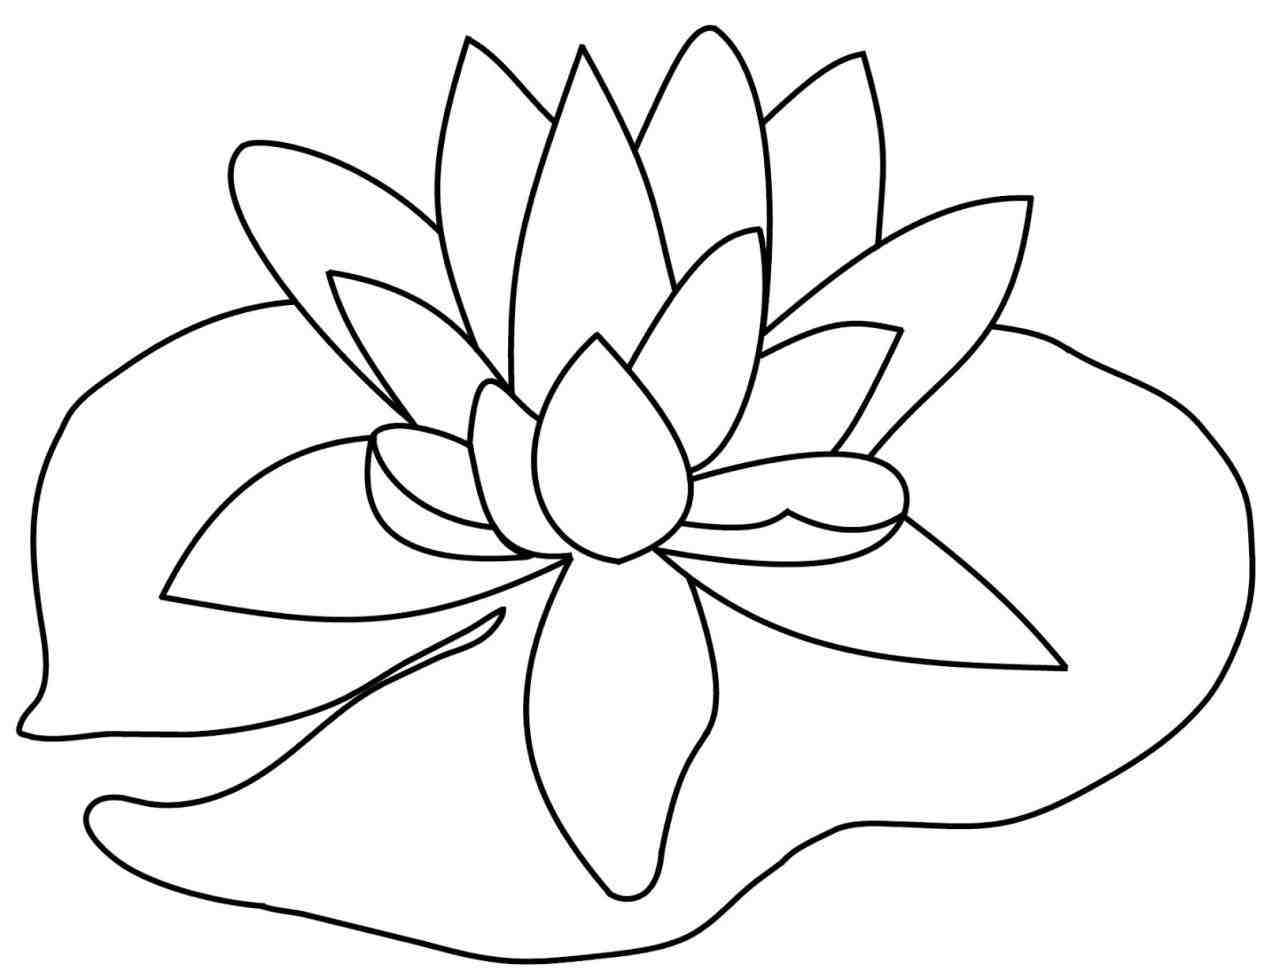 1264x972 Lily Flower Drawing Outline Stargazer Lily Drawing